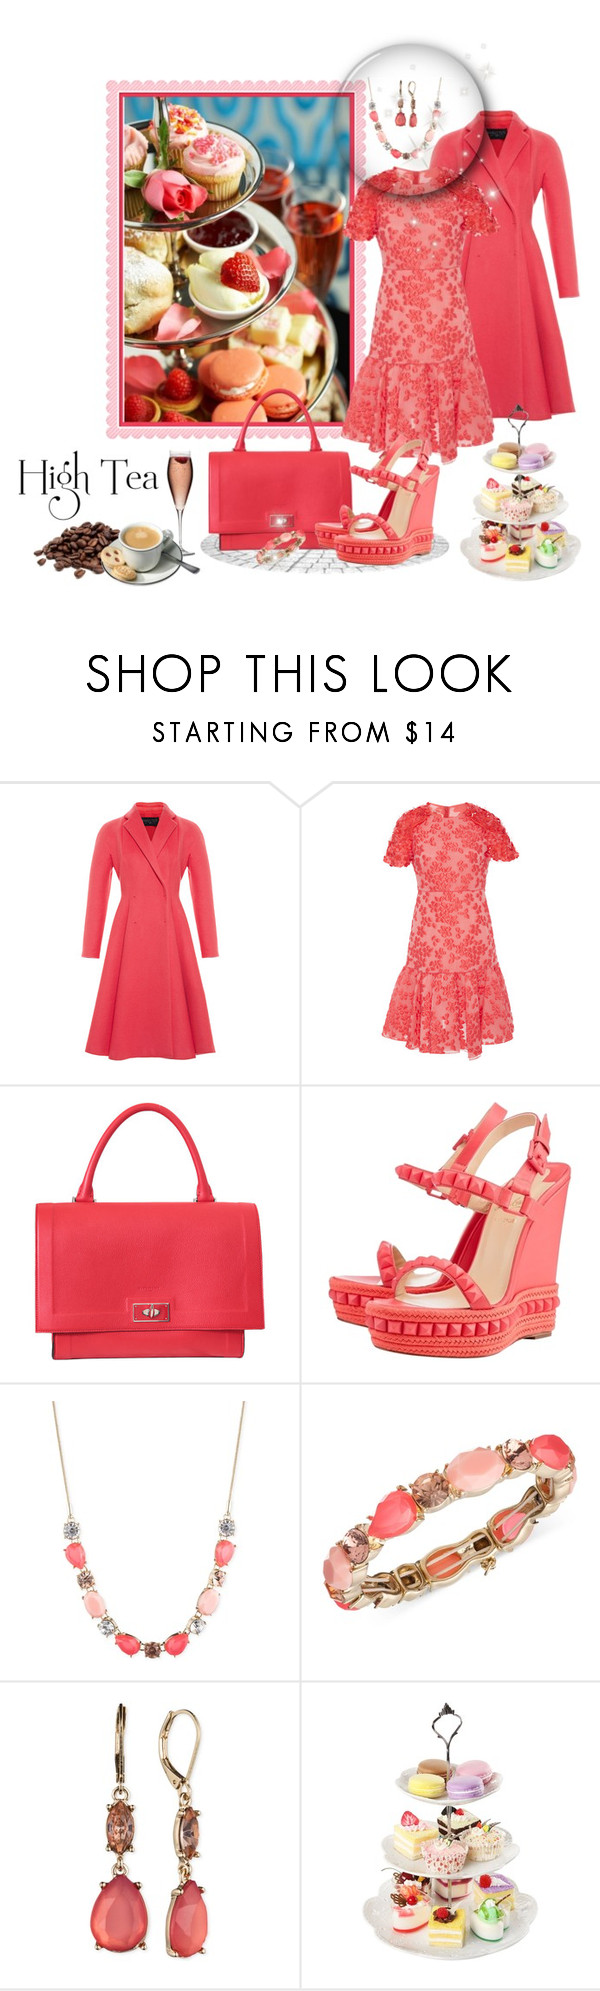 """High Tea With The Girls"" by leanne-mcclean ❤ liked on Polyvore featuring Giambattista Valli, Givenchy, Christian Louboutin and Nine West"